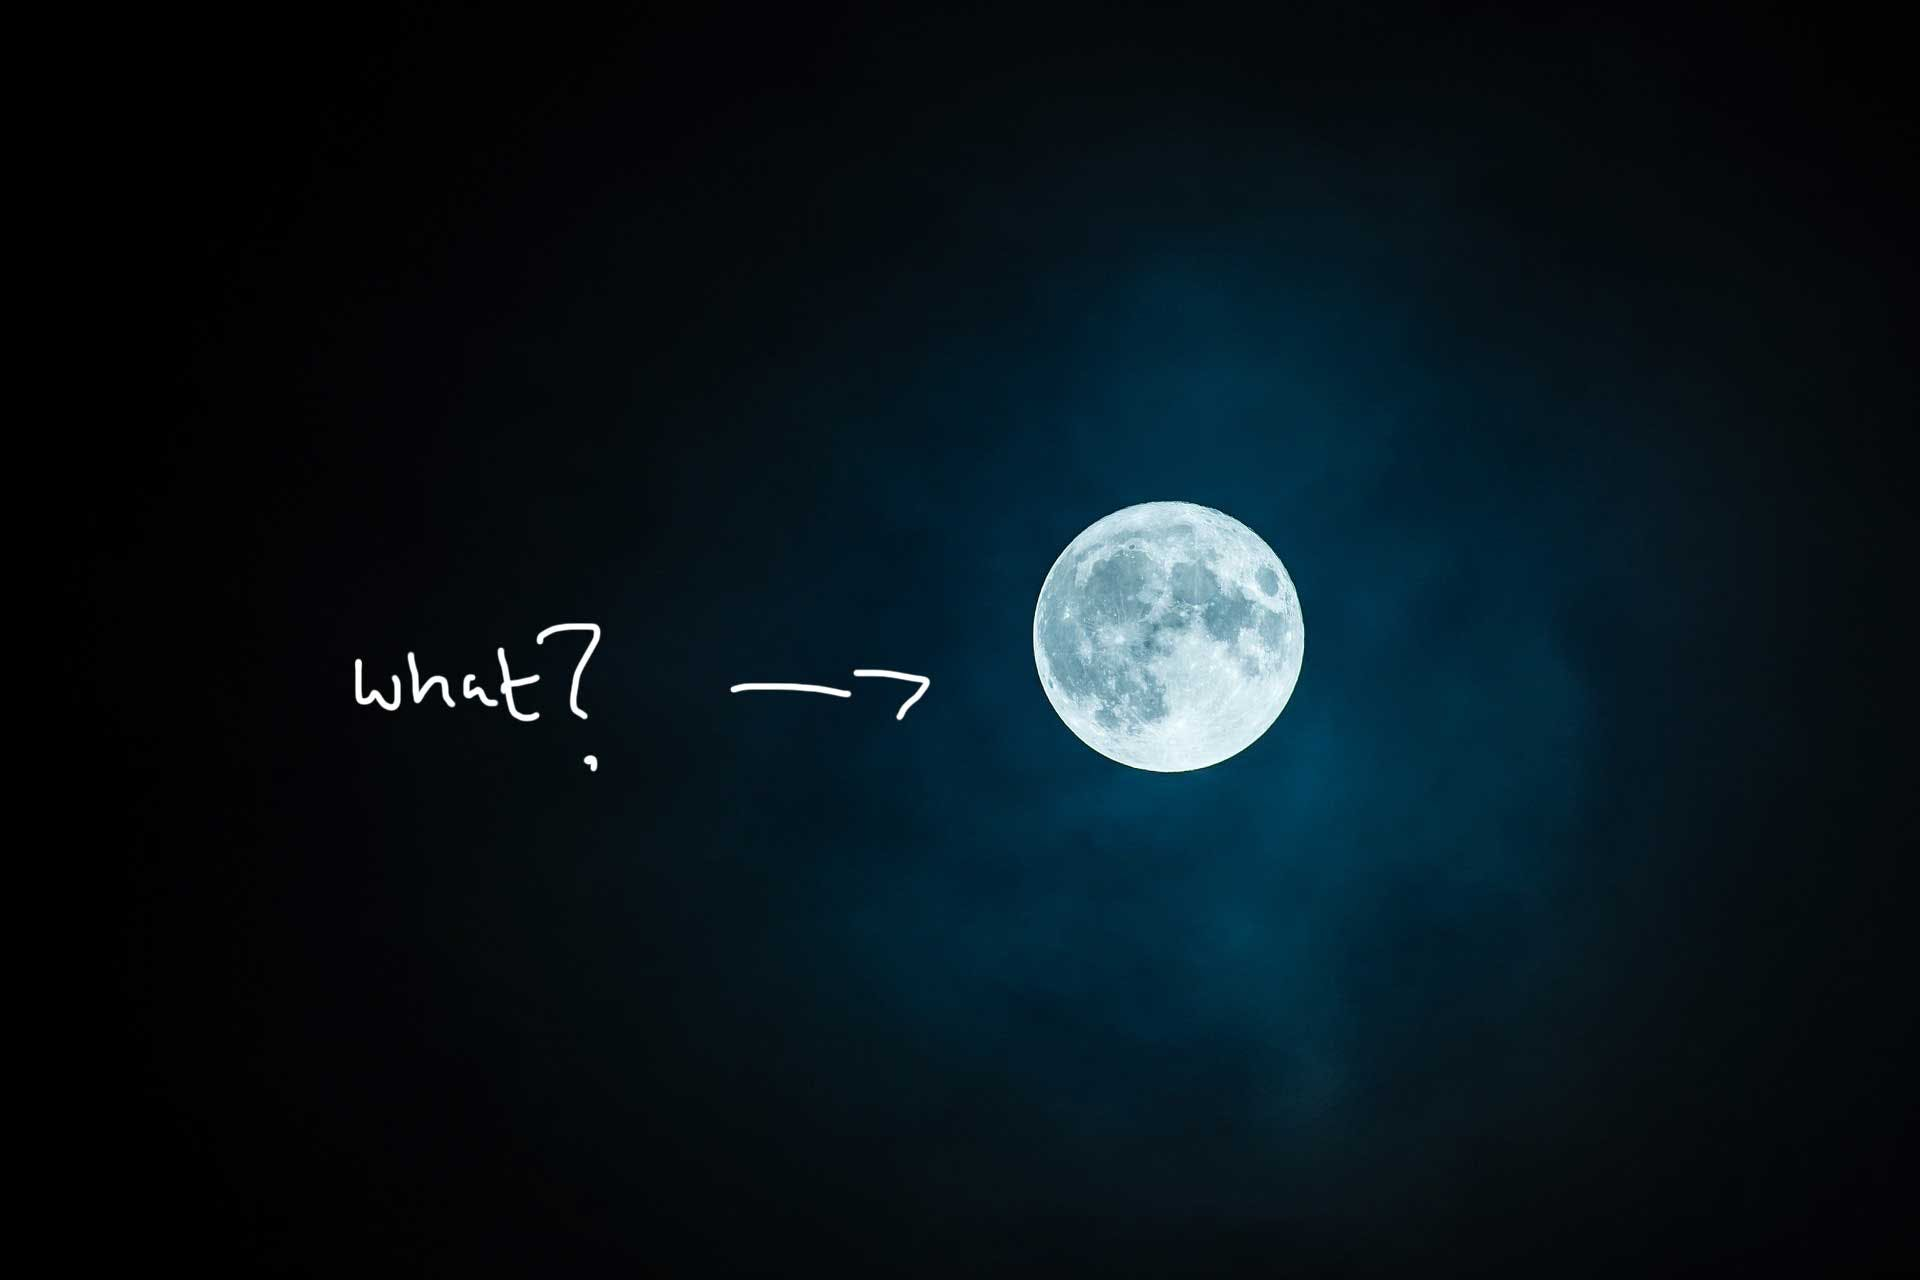 What mystery does the moon hold?